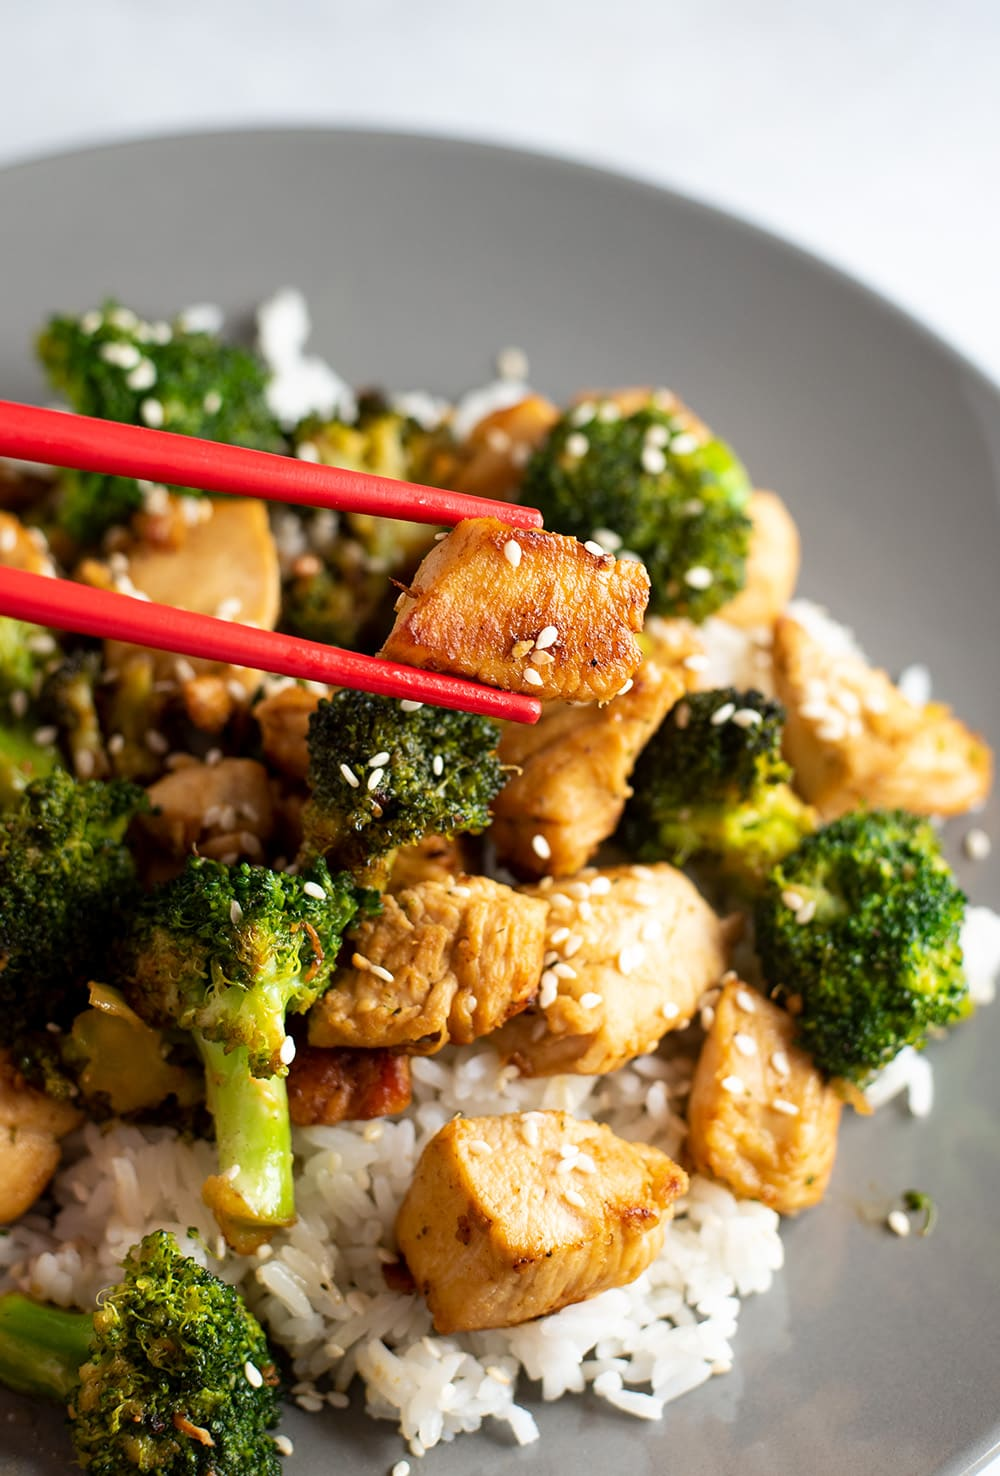 Hibachi Chicken & Broccoli Recipe